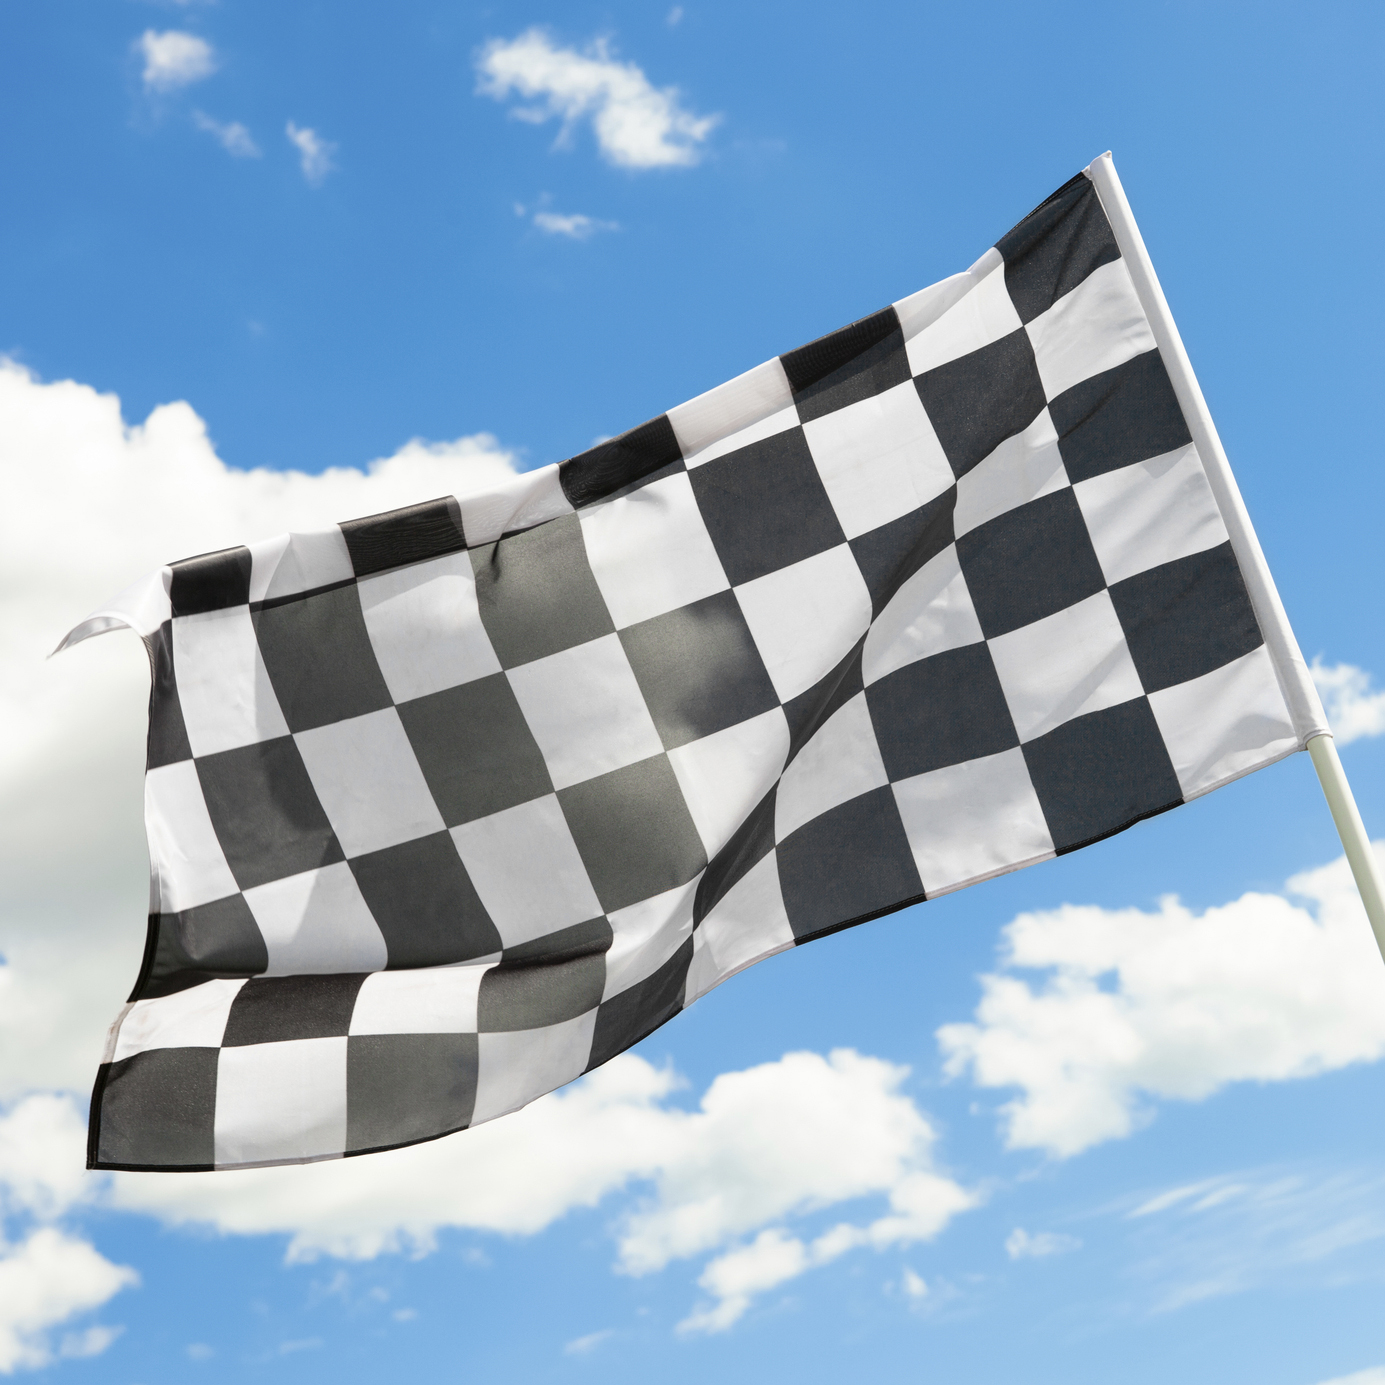 checkered, flag, black, white, racing, final, winner,printed,